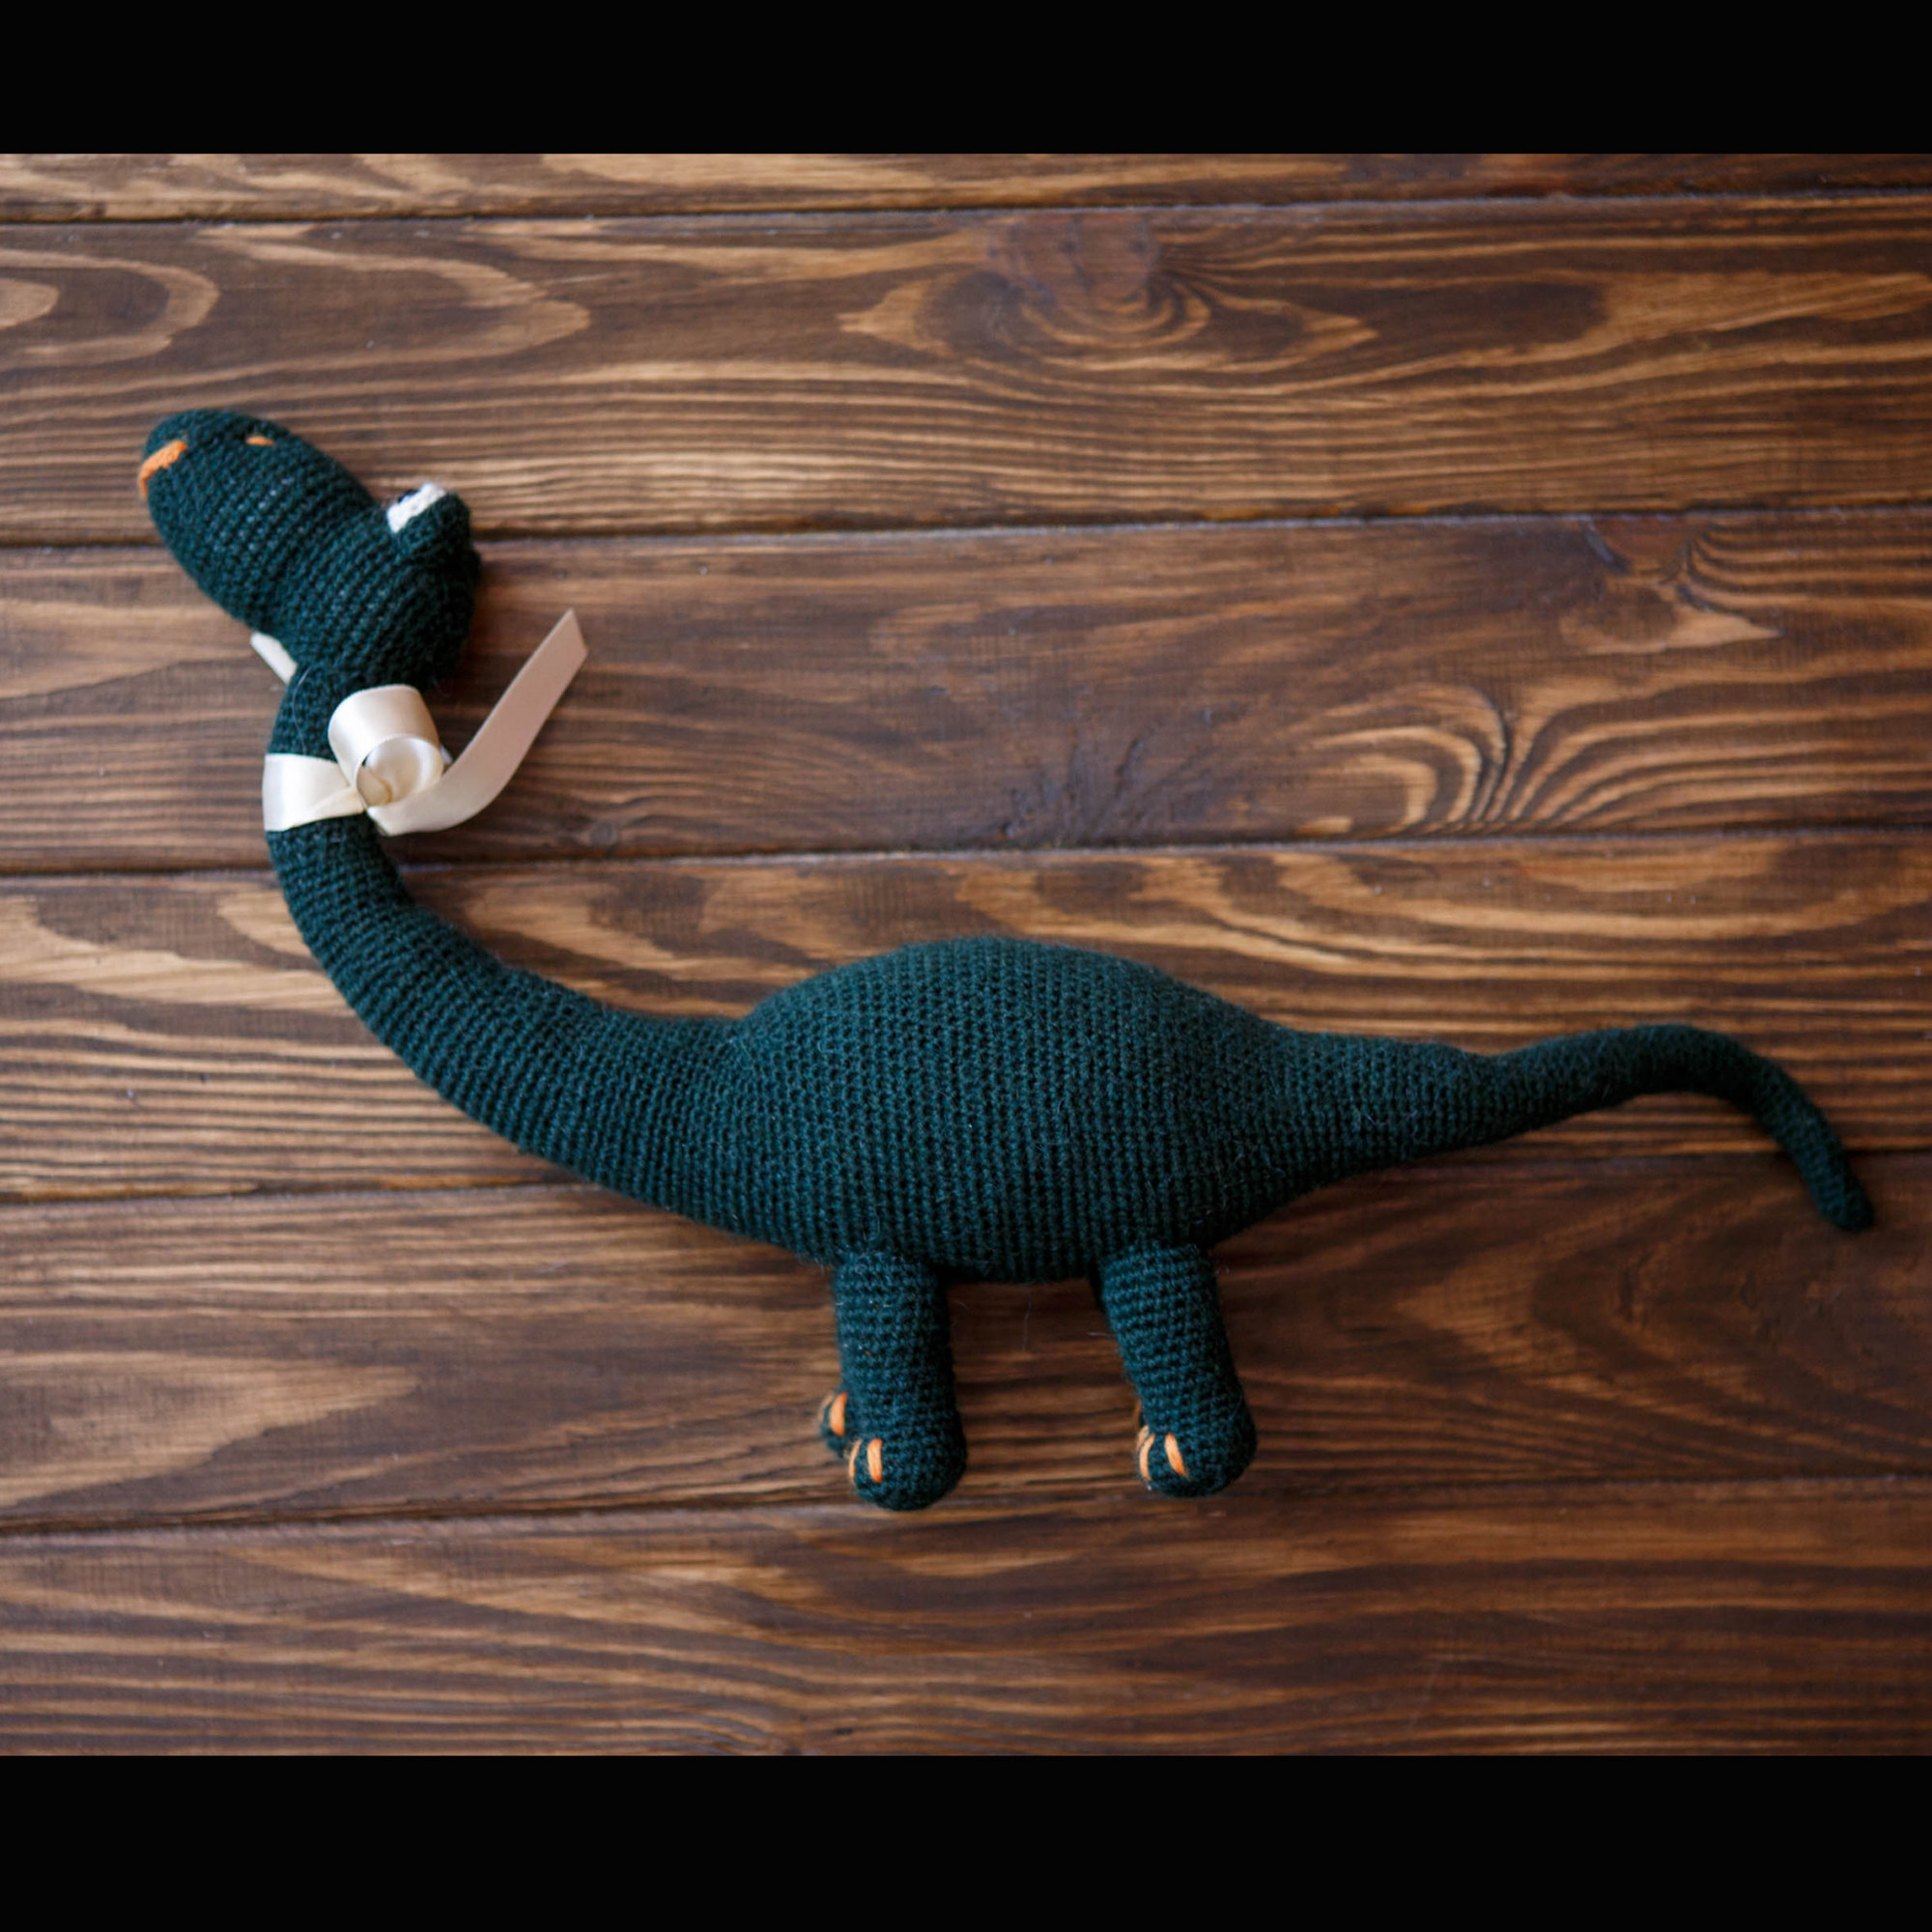 Forest Green Dino Land Before Time Handicraft Pre Historic Era